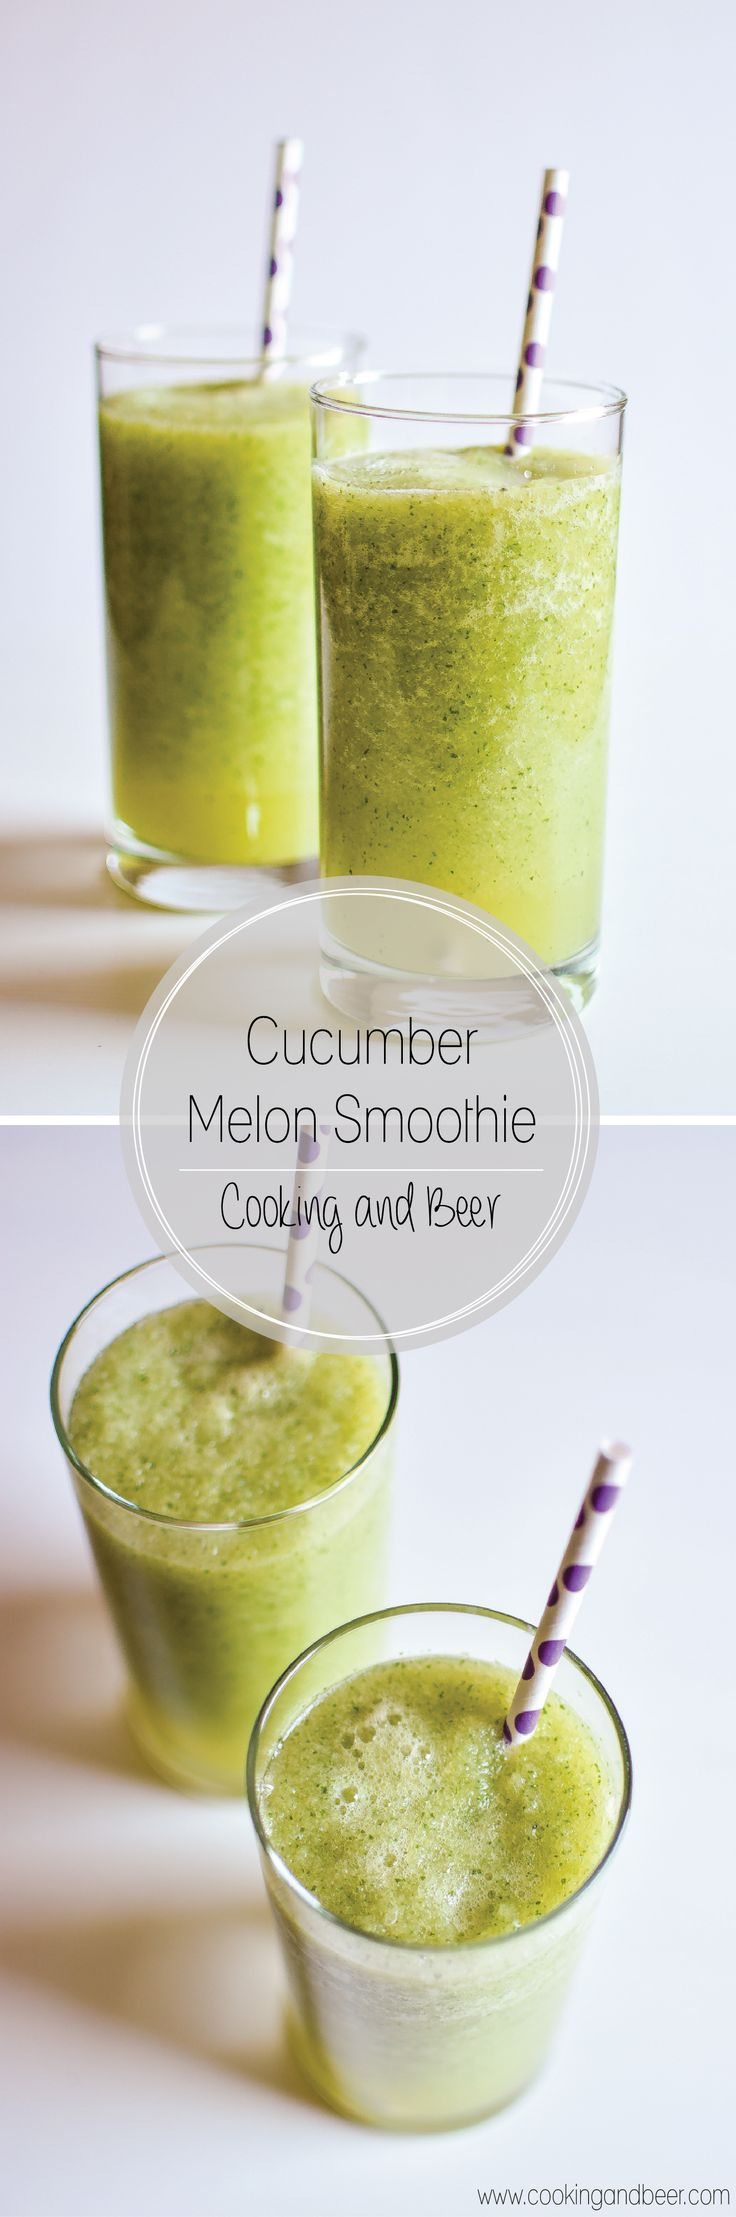 Cucumber Melon Smoothie: a refreshing smoothie recipe to start your day!